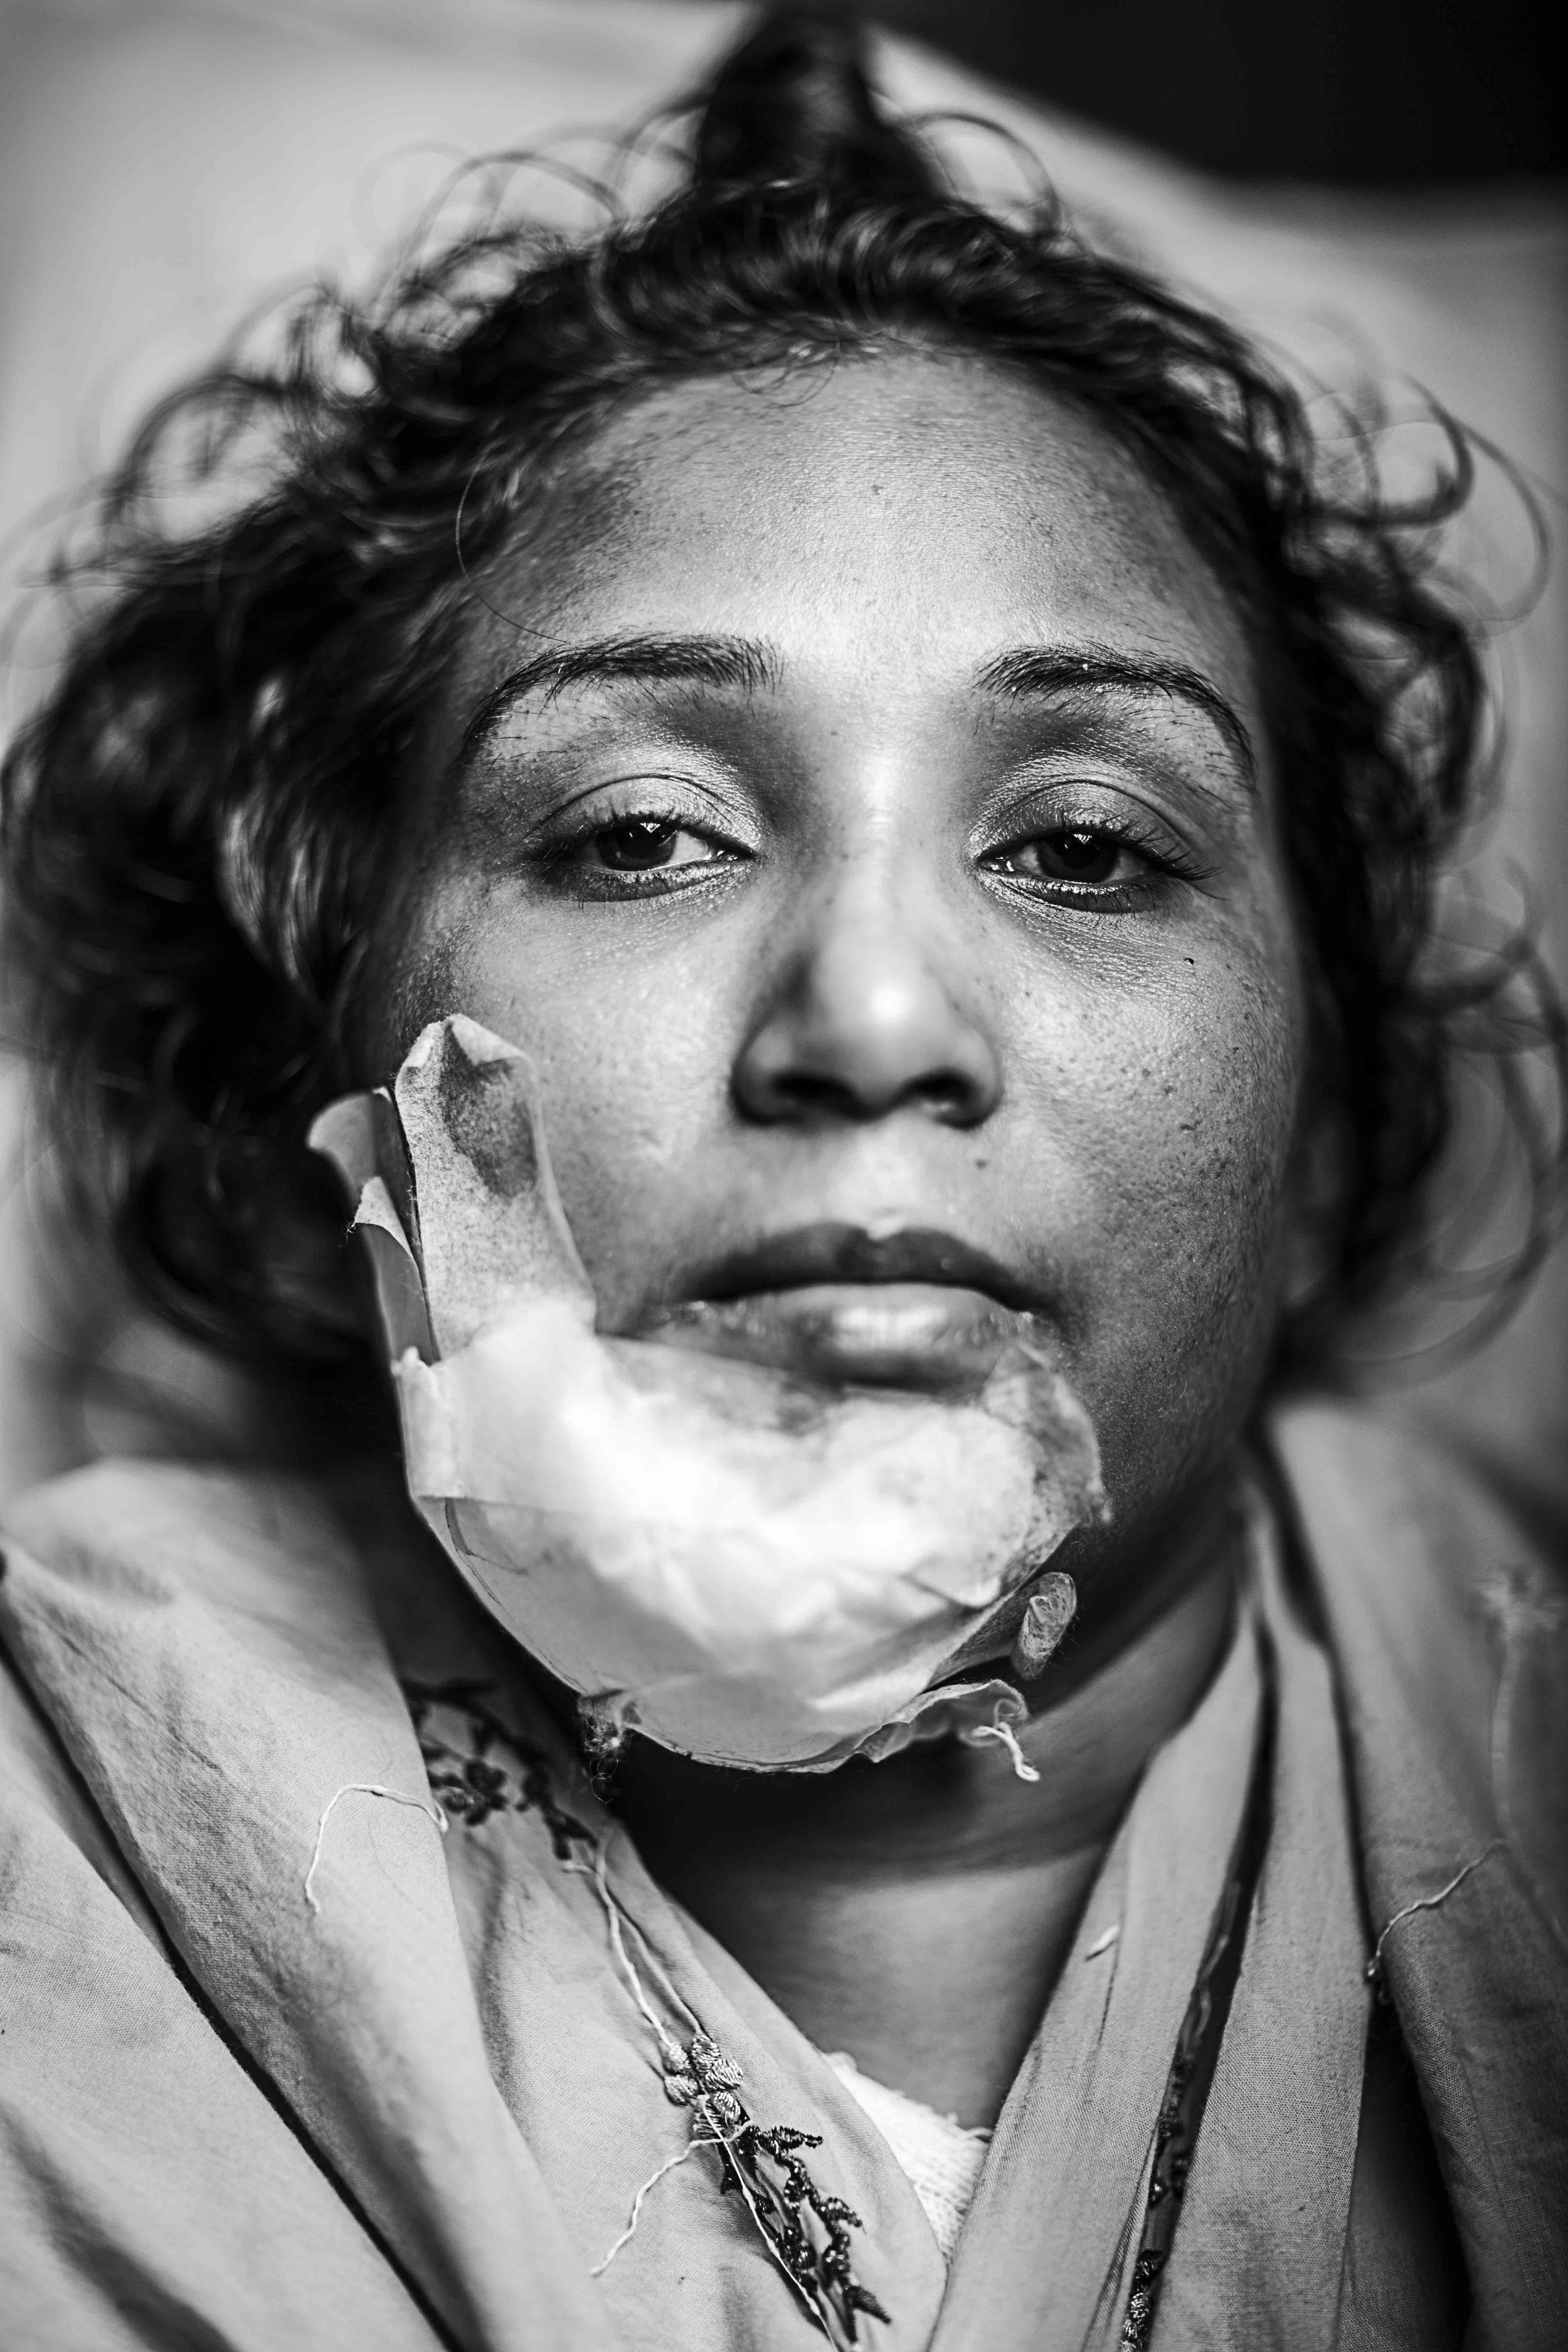 Kajal, 29 years old from Kamrangirchor, Dhaka was admitted to Dhaka Medical College Hospital on the and received burns to her right arm causing a soft tissue injury. A Molotov cocktail was pointed at her rickshaw and thrown while she was returning from a relatives house.